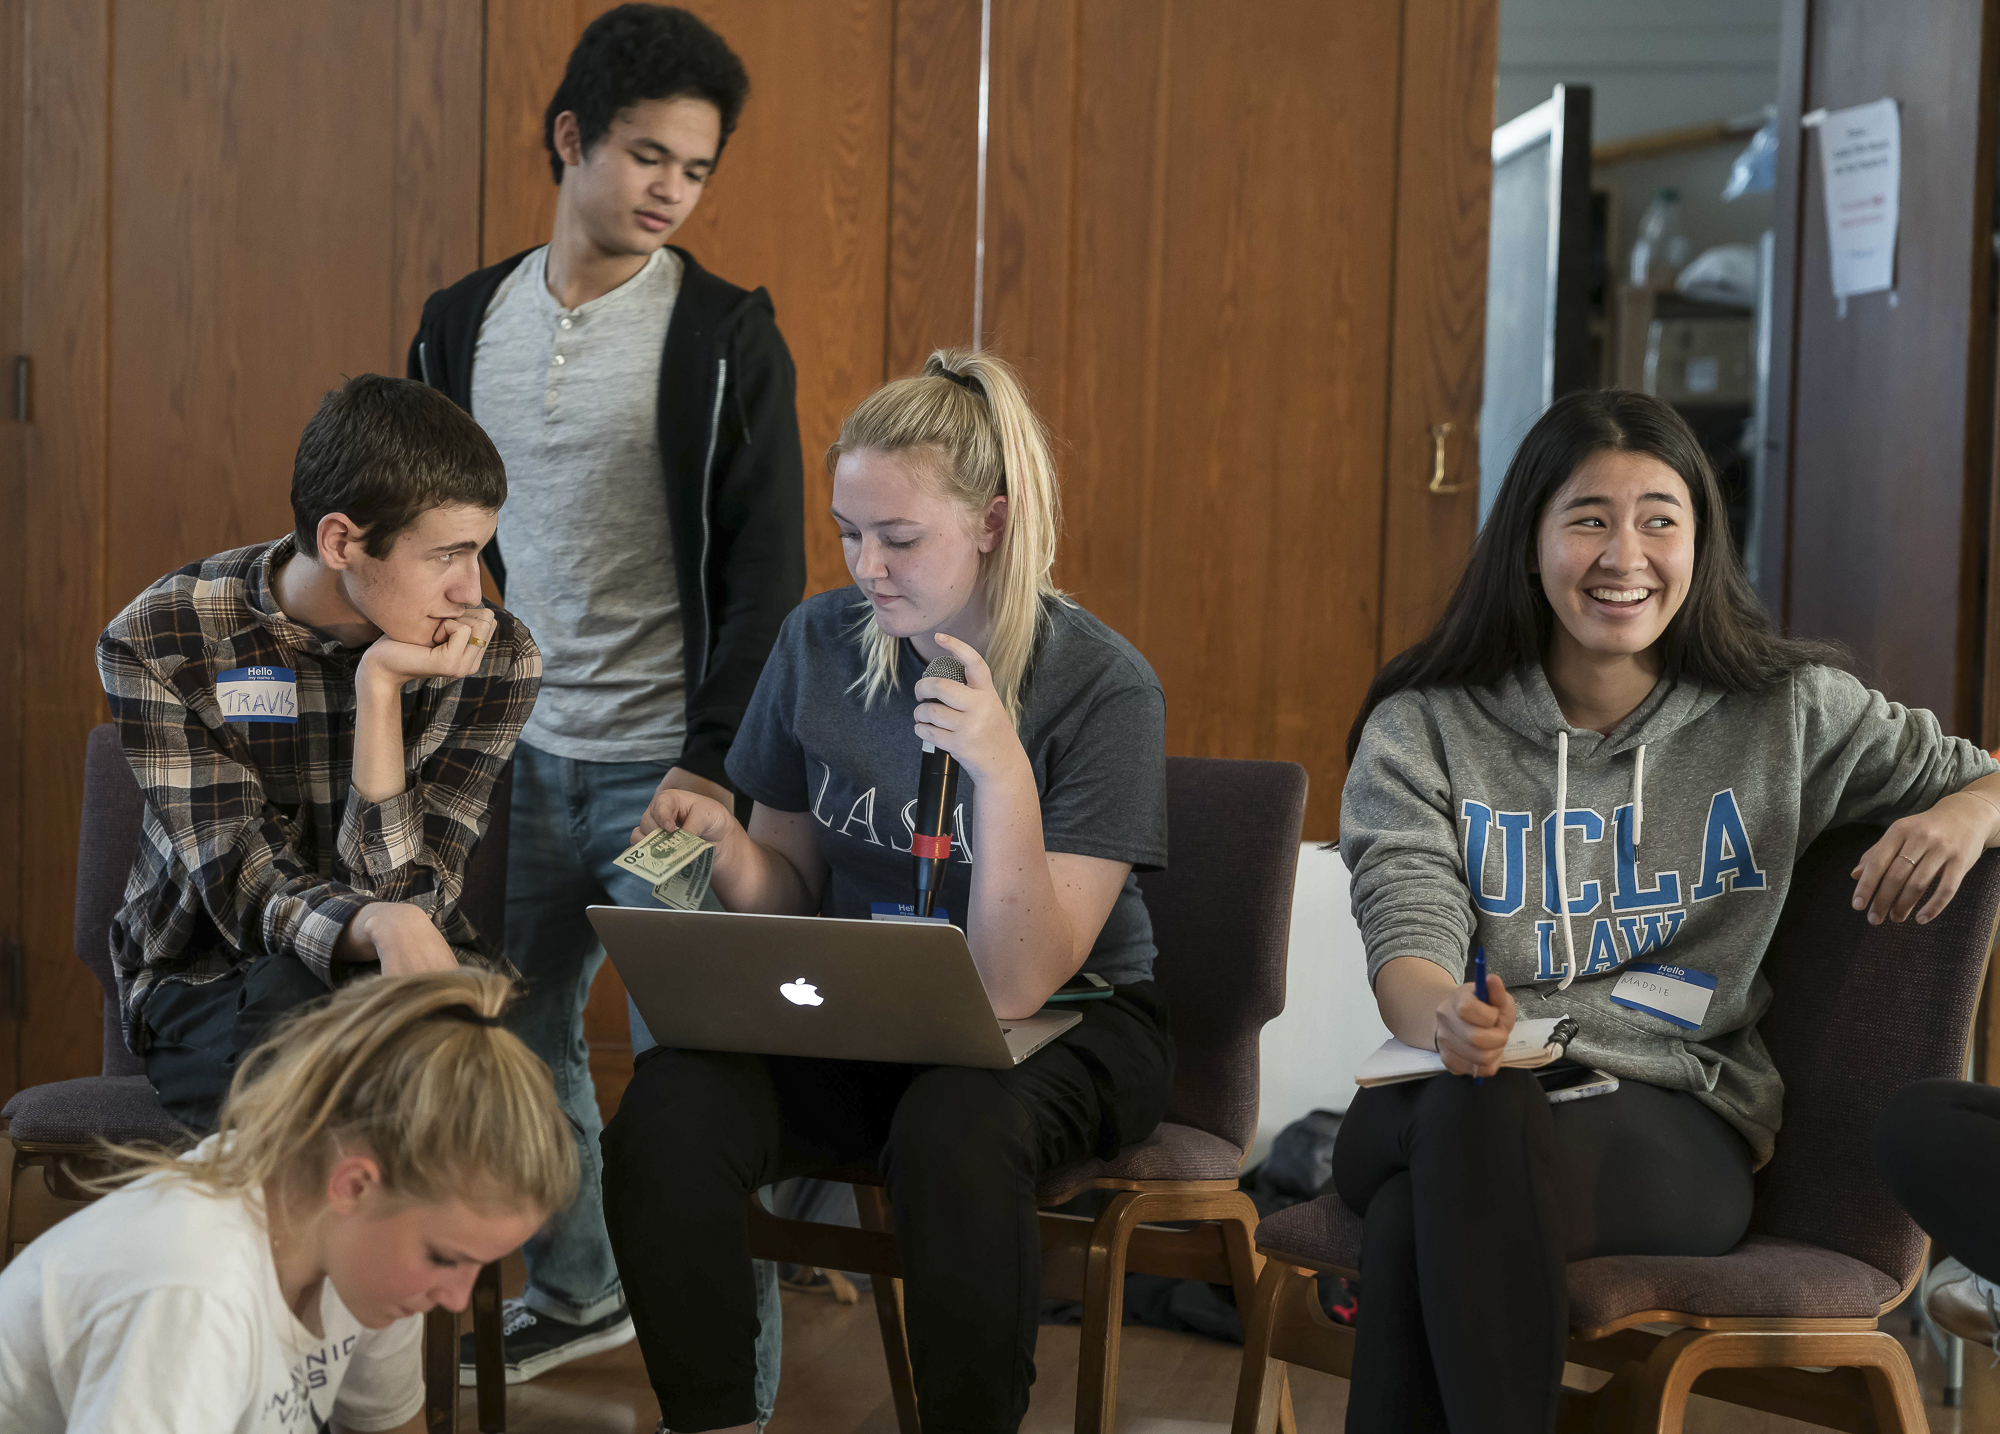 Students from several Los Angeles area high schools met in Santa Monica, California on Tuesday, April 17, 2018 to discuss a planned walkout and protest rally at Santa Monica City Hall on Friday, April 20. Clockwise from lower left: Siri Storstein, Travis Ackermann, Lorenzo De Los Reyes, Camille Hannant, and Maddie Fenster. (Helena Sung/Corsair Staff)